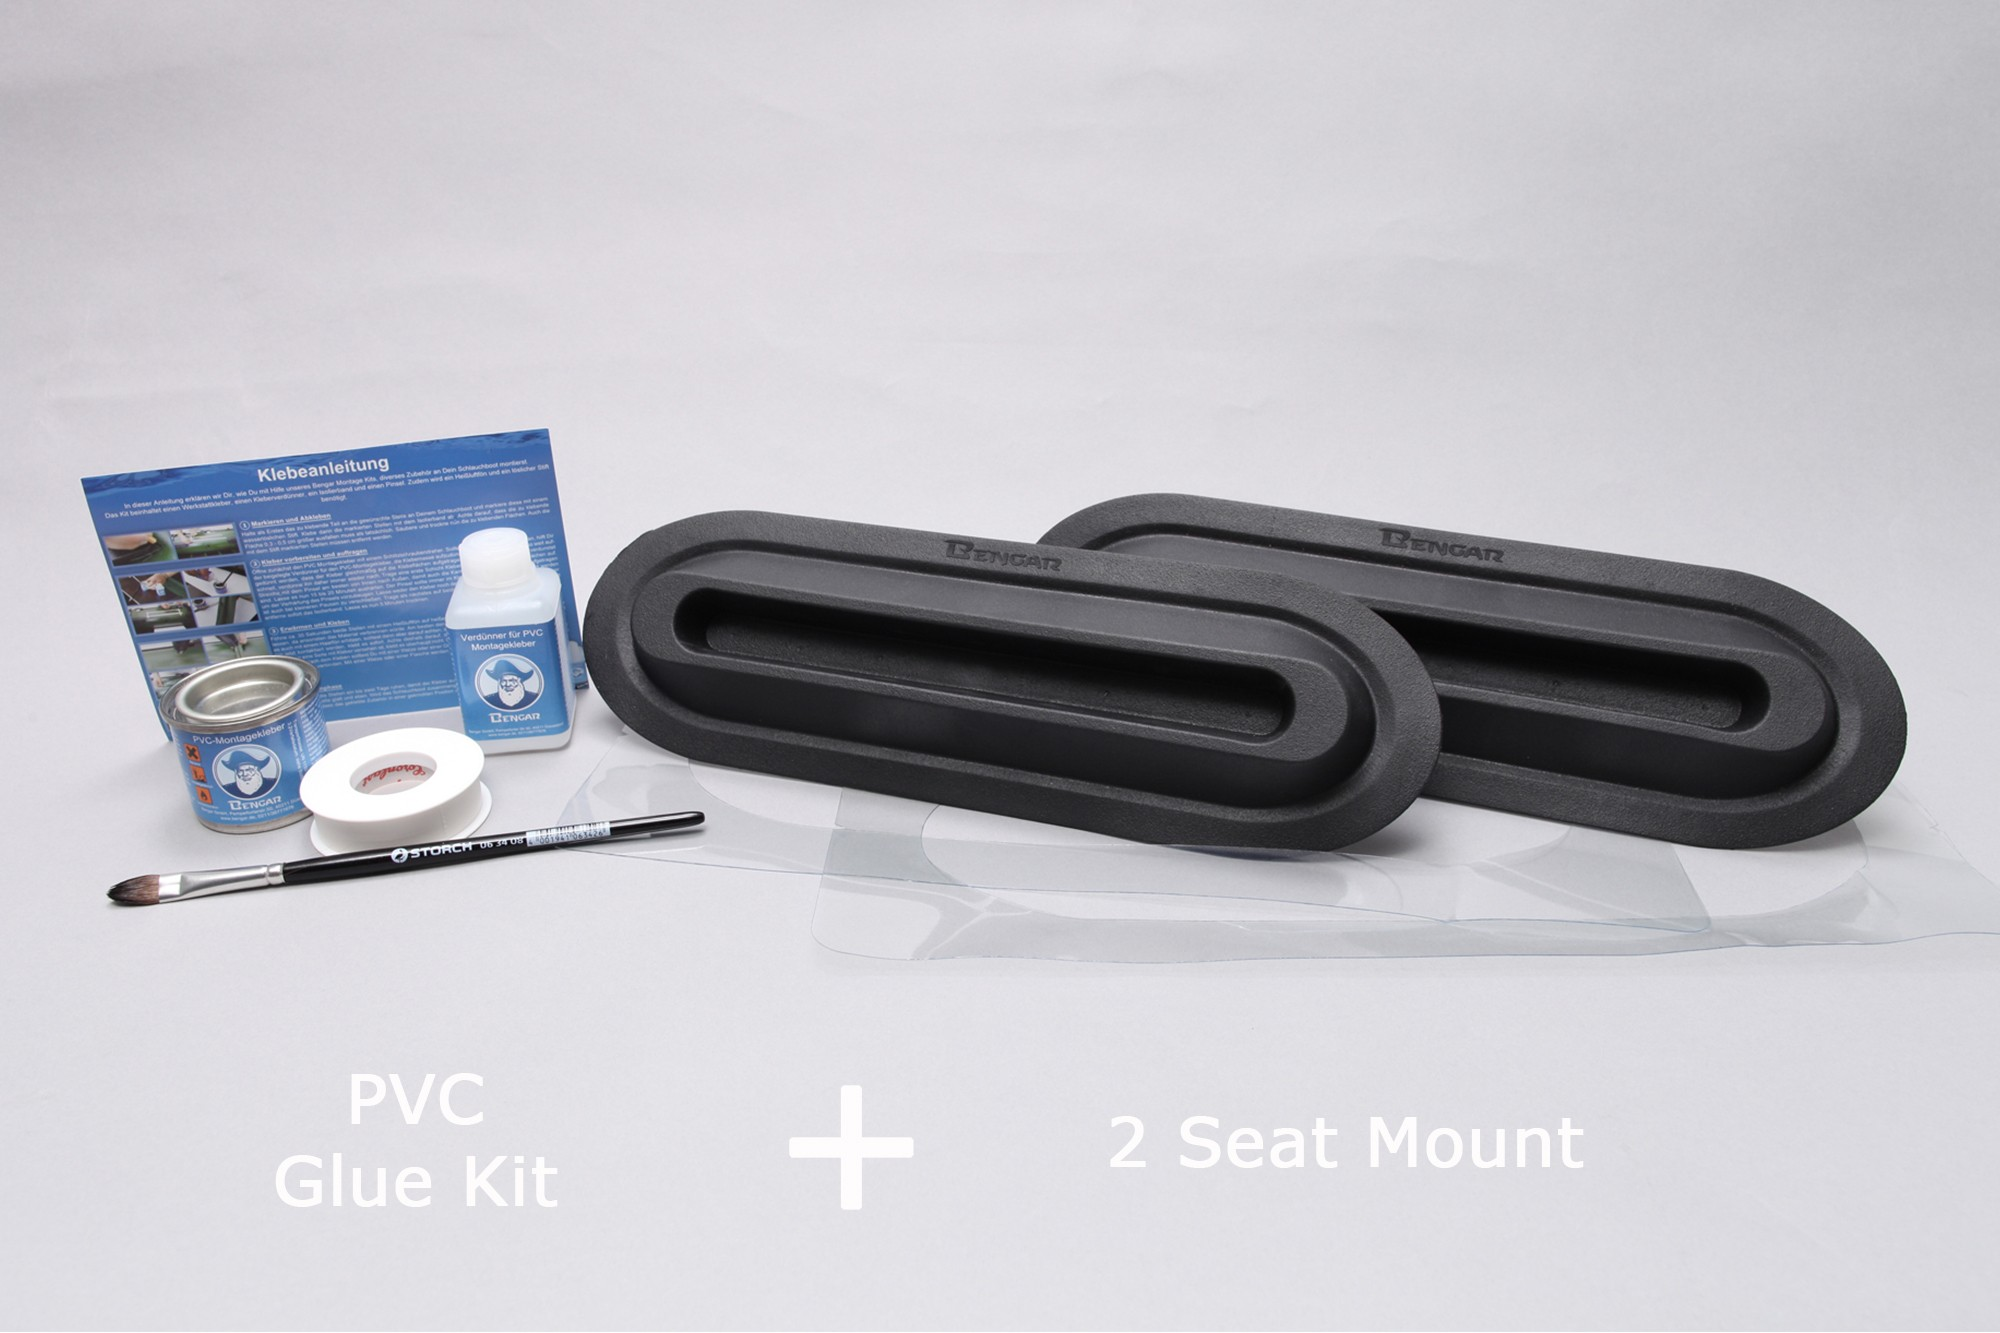 Phenomenal Set 2 Mounts For Boat Seats Pvc Glue Kit For Inflatables Pabps2019 Chair Design Images Pabps2019Com